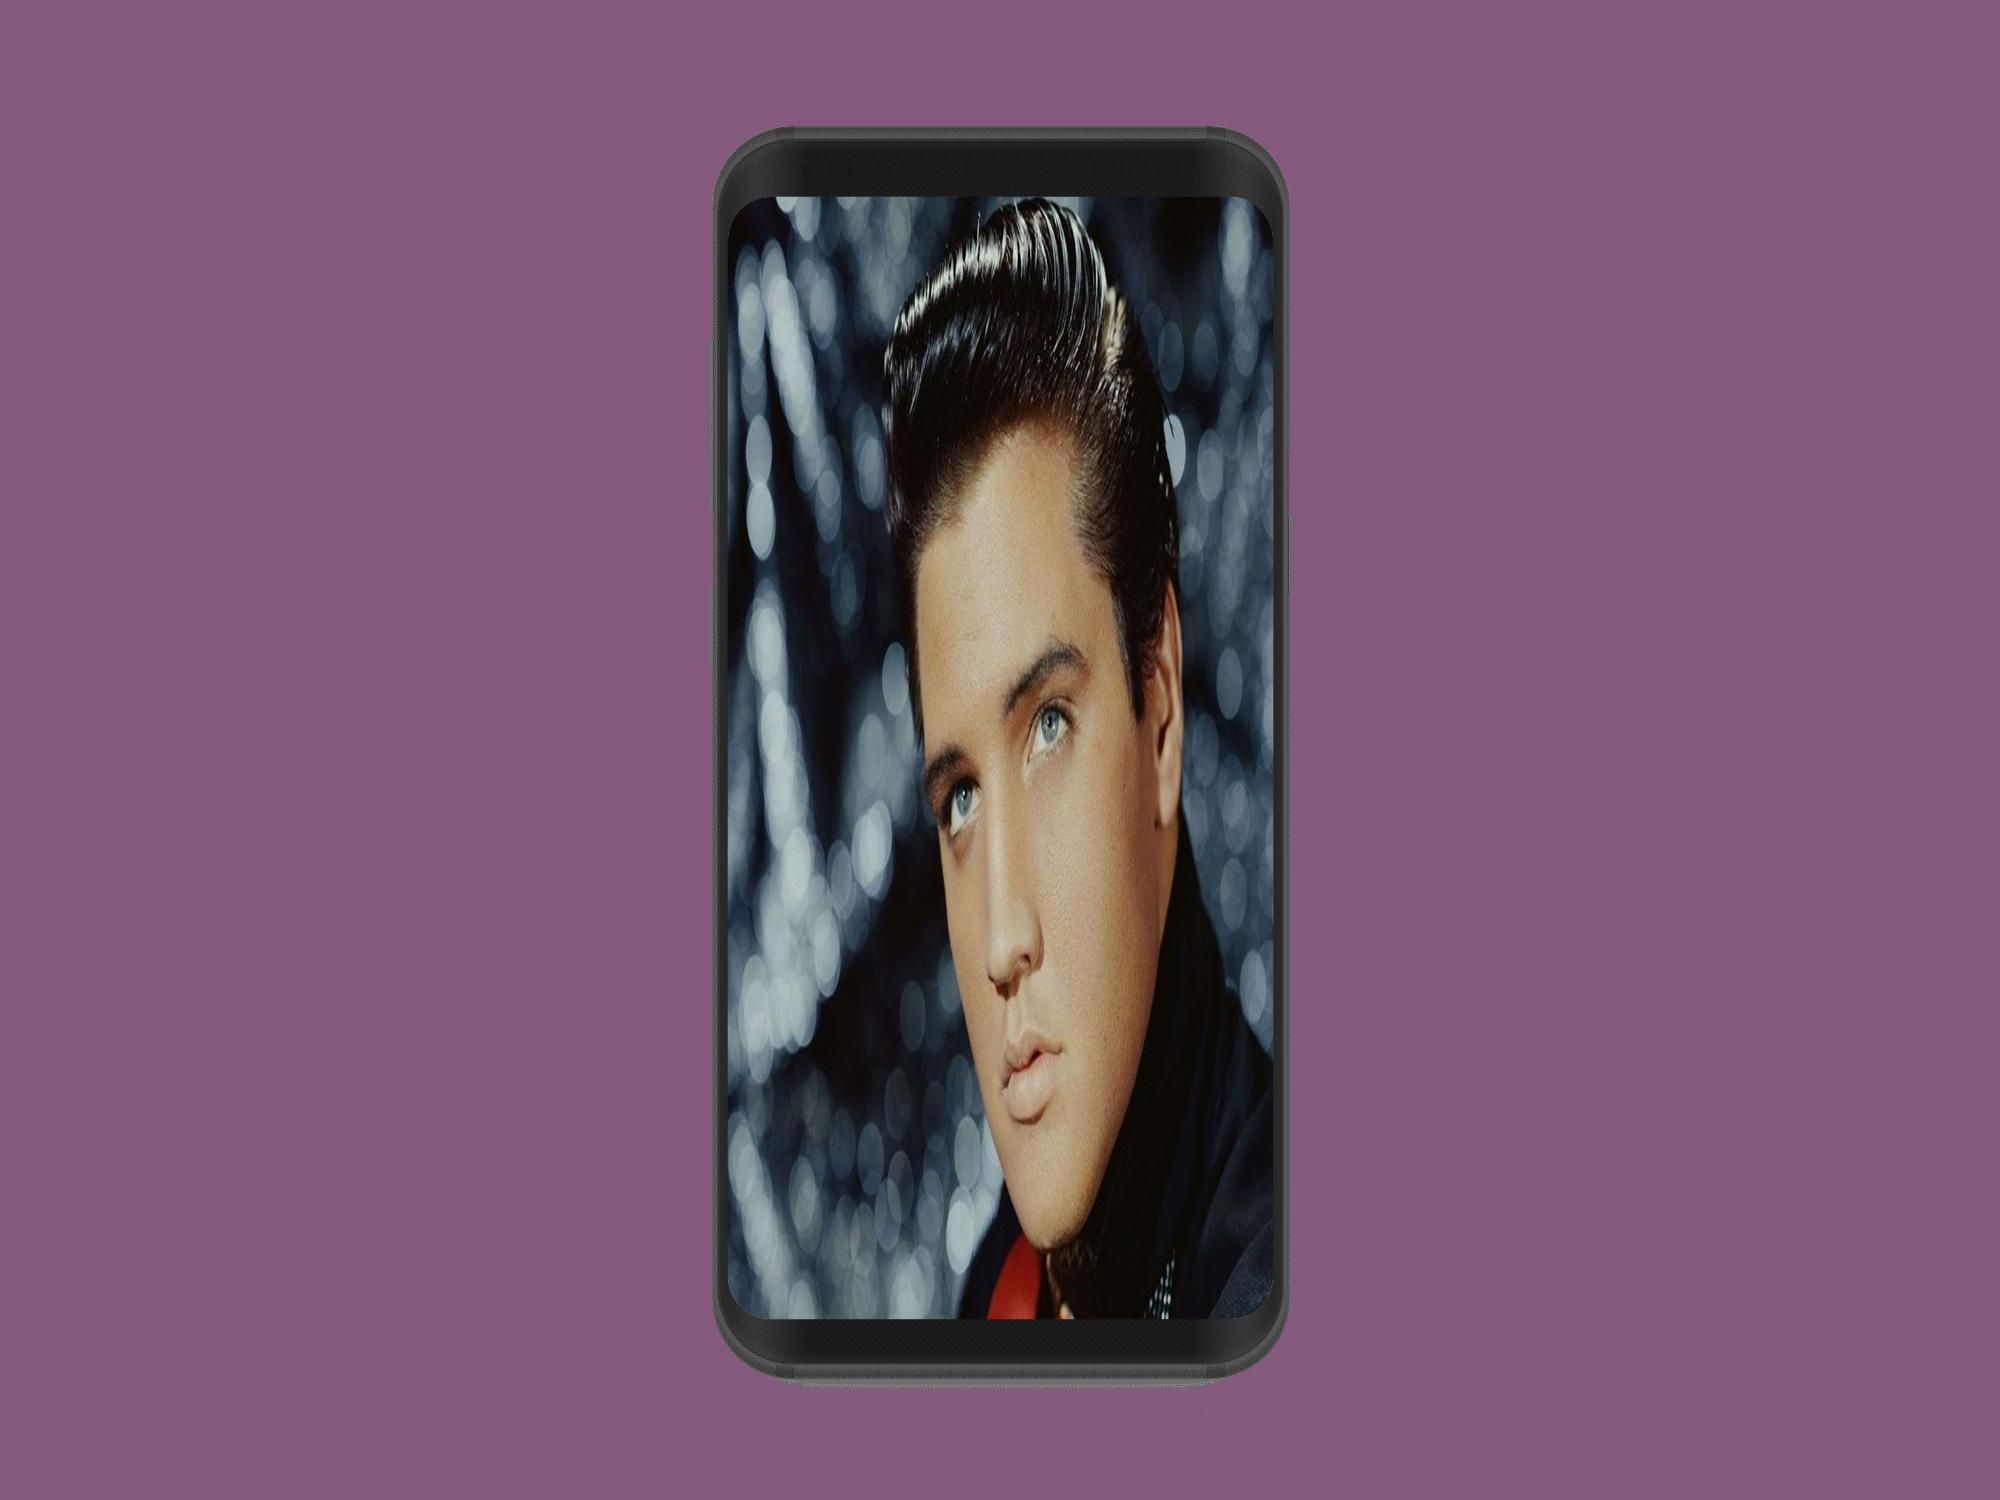 Elvis Presley Wallpaper 4k Hd For Android Apk Download